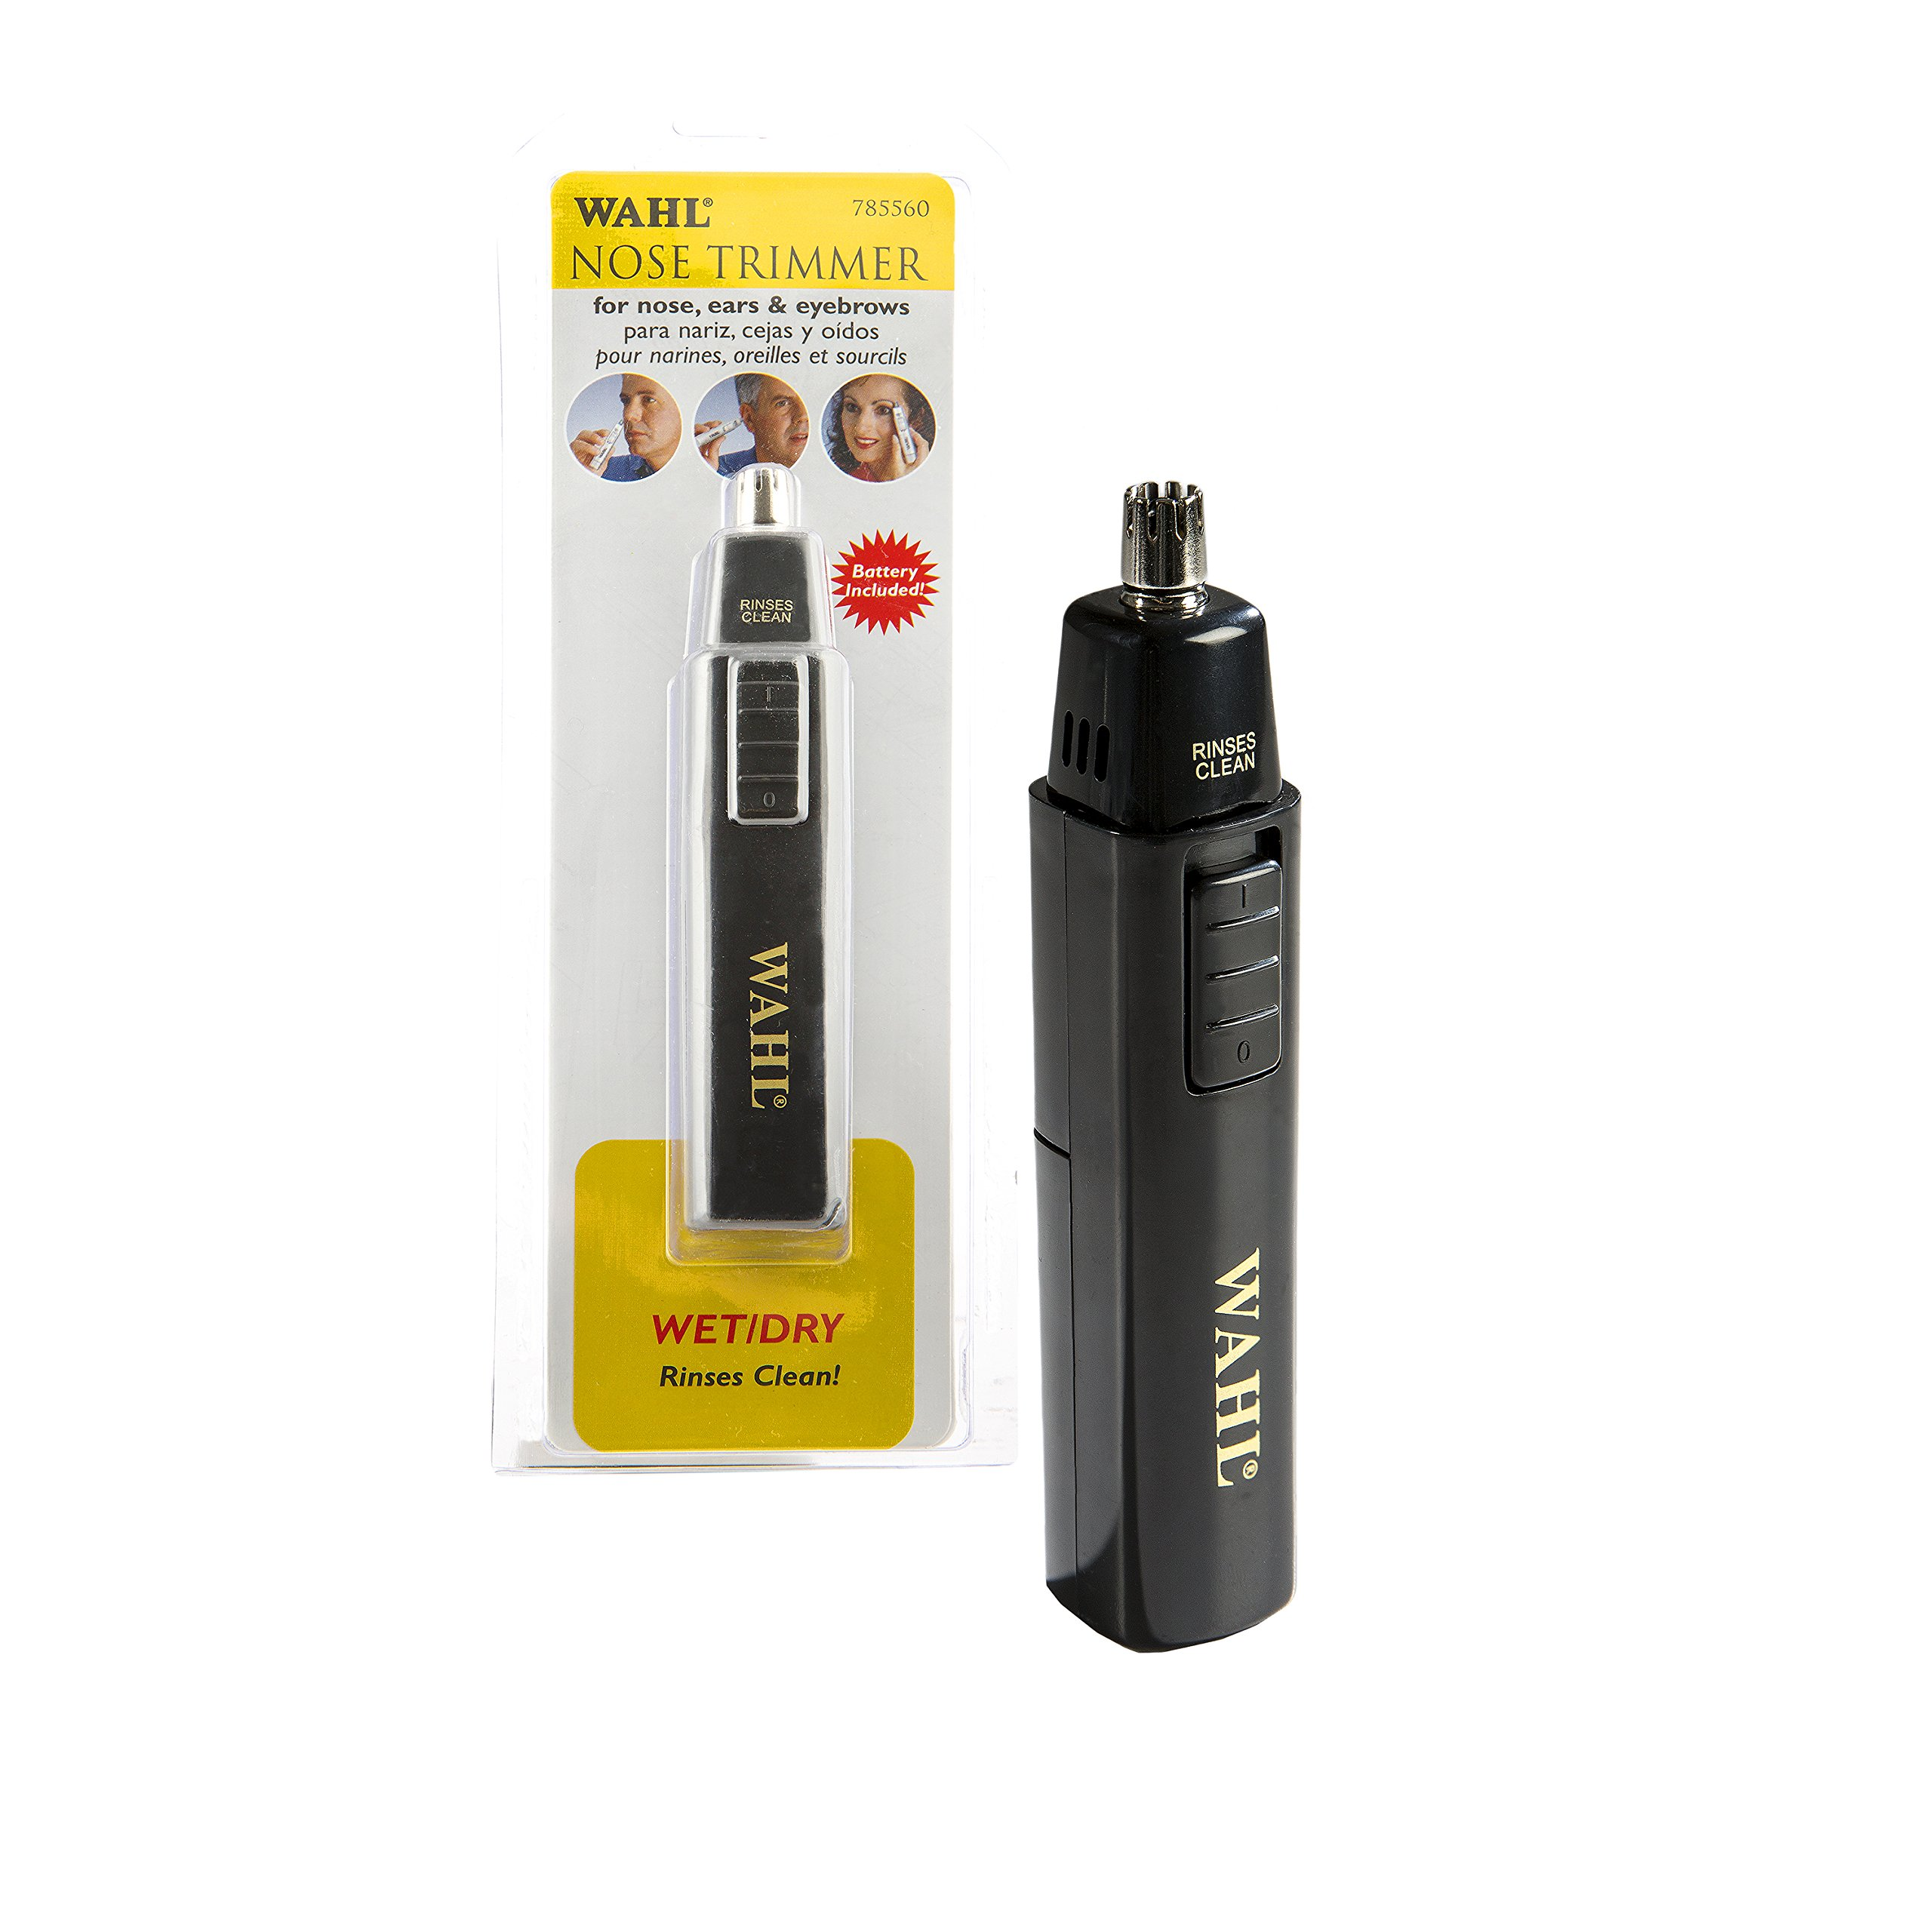 Wahl Professional Nose Trimmer #5560-700 – Great for Barbers and Stylists – Stainless Steel Blade Works Wet or Dry – Battery Operated – Accessories Included